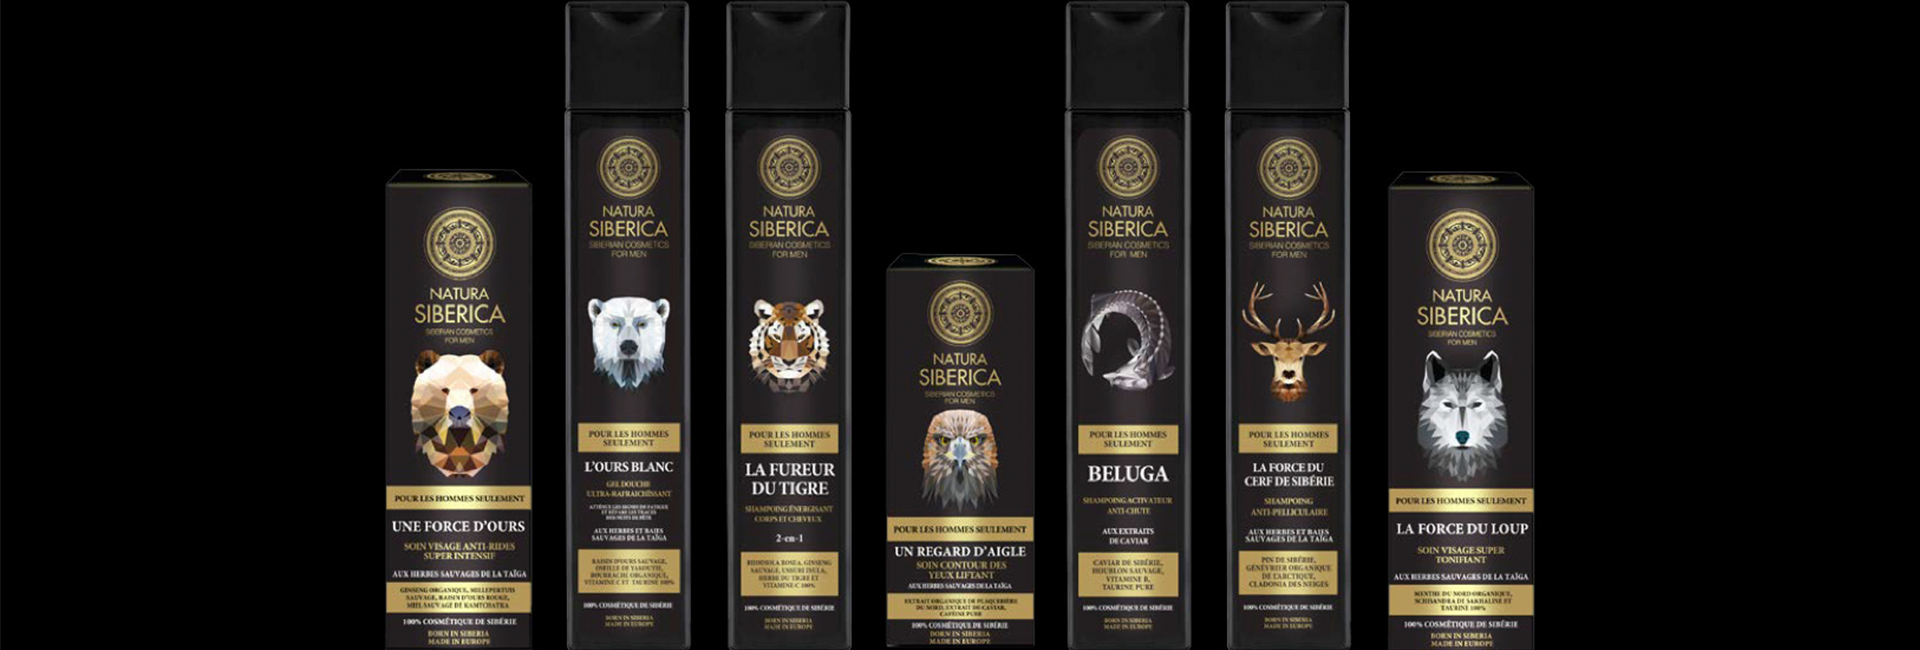 Gamme pour hommes, Natura Siberica